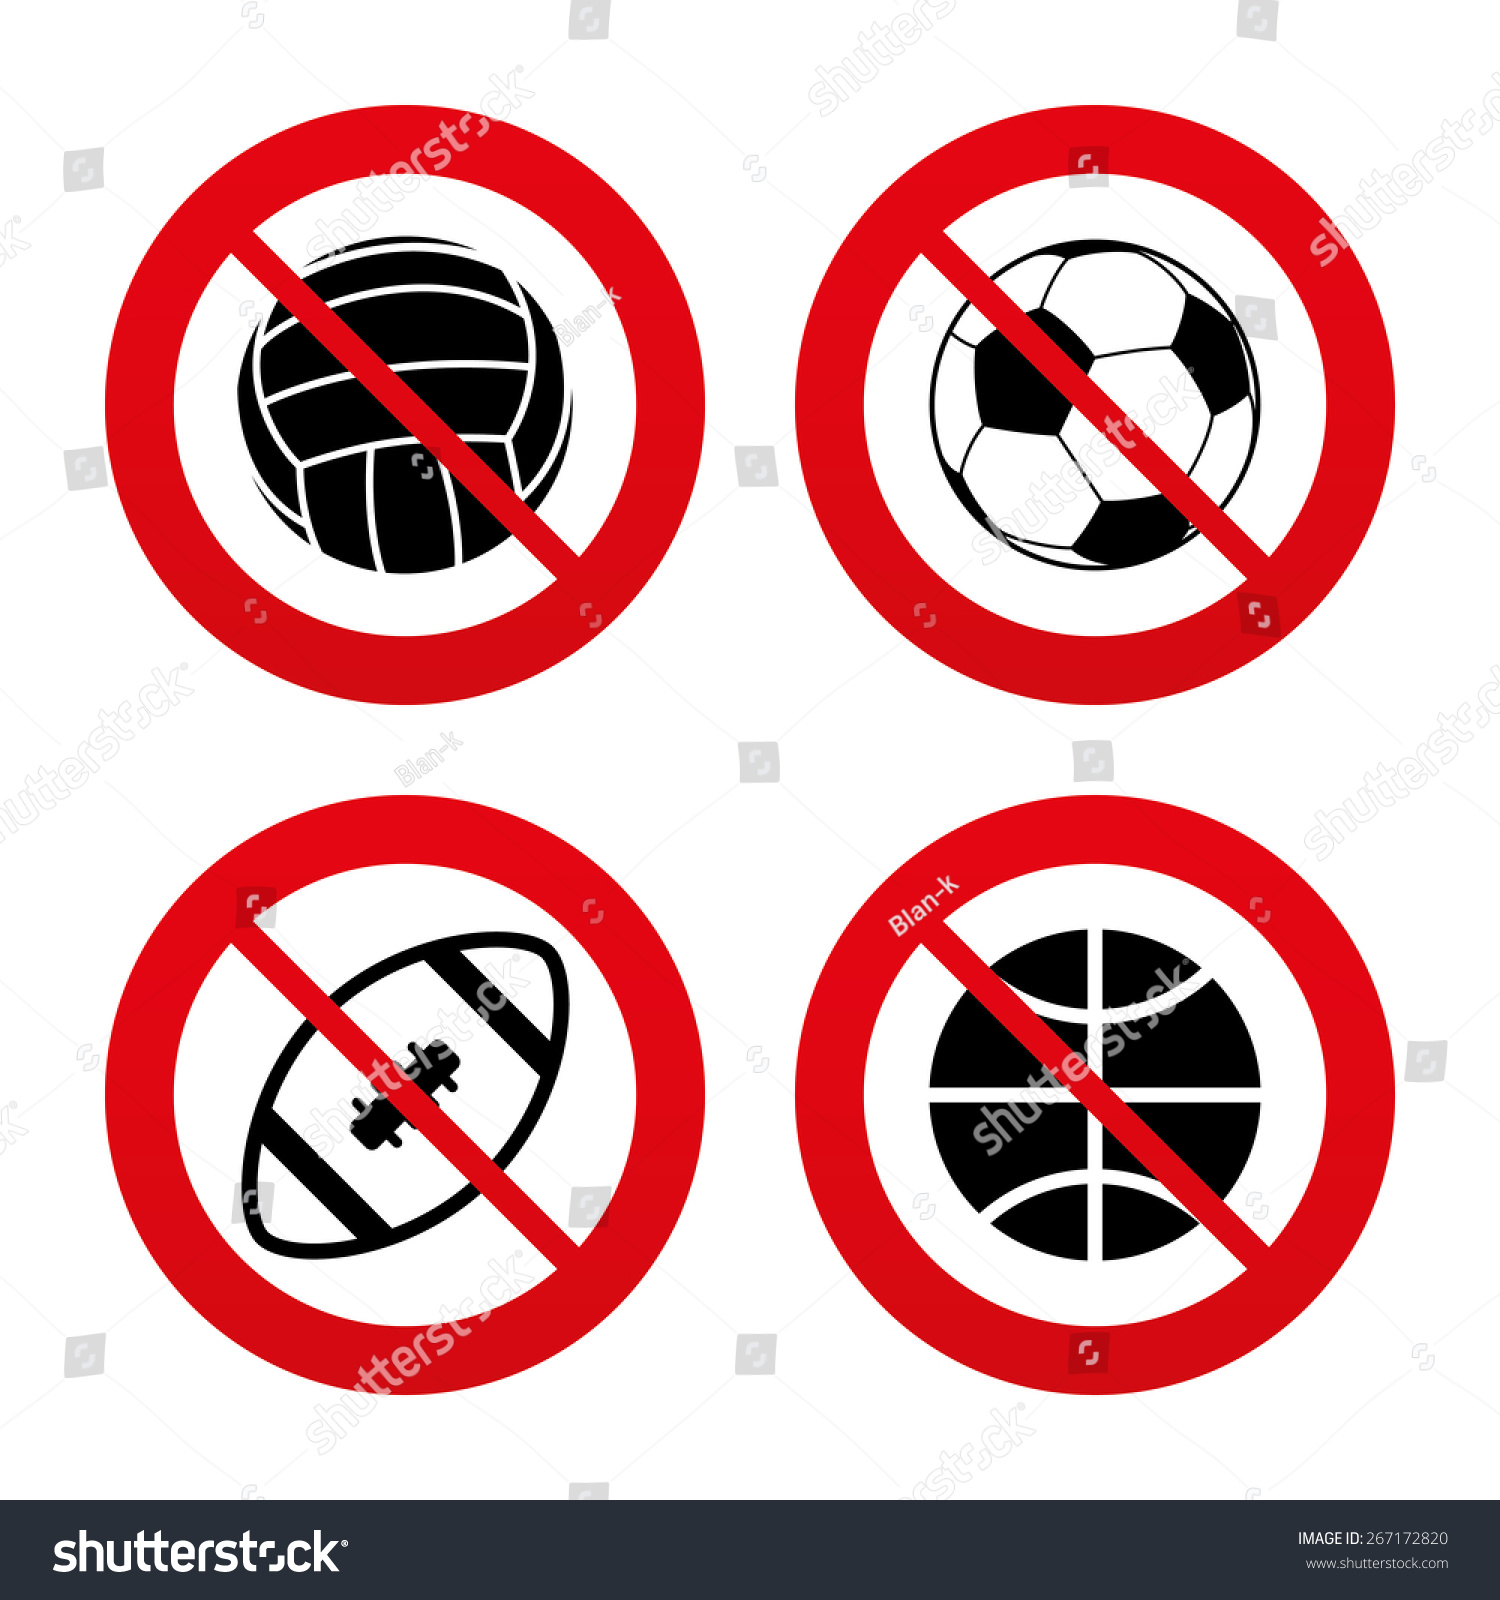 signs sport football ban soccer basketball balls stop american games team volleyball icons vector addresses shutterstock